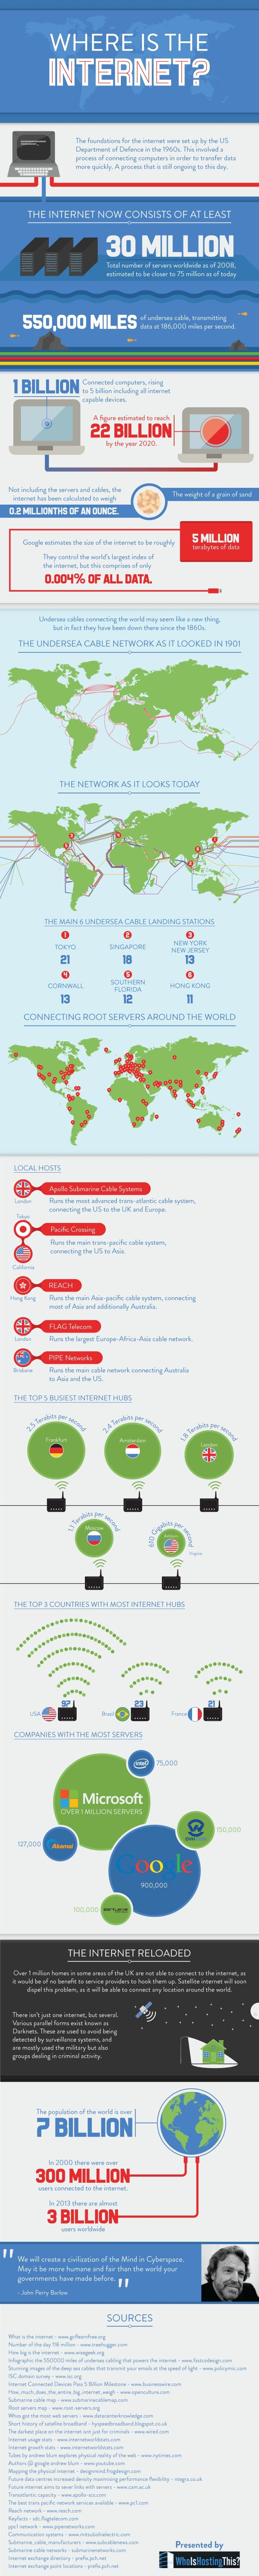 Where is the Internet? #infografia #infographic #internet